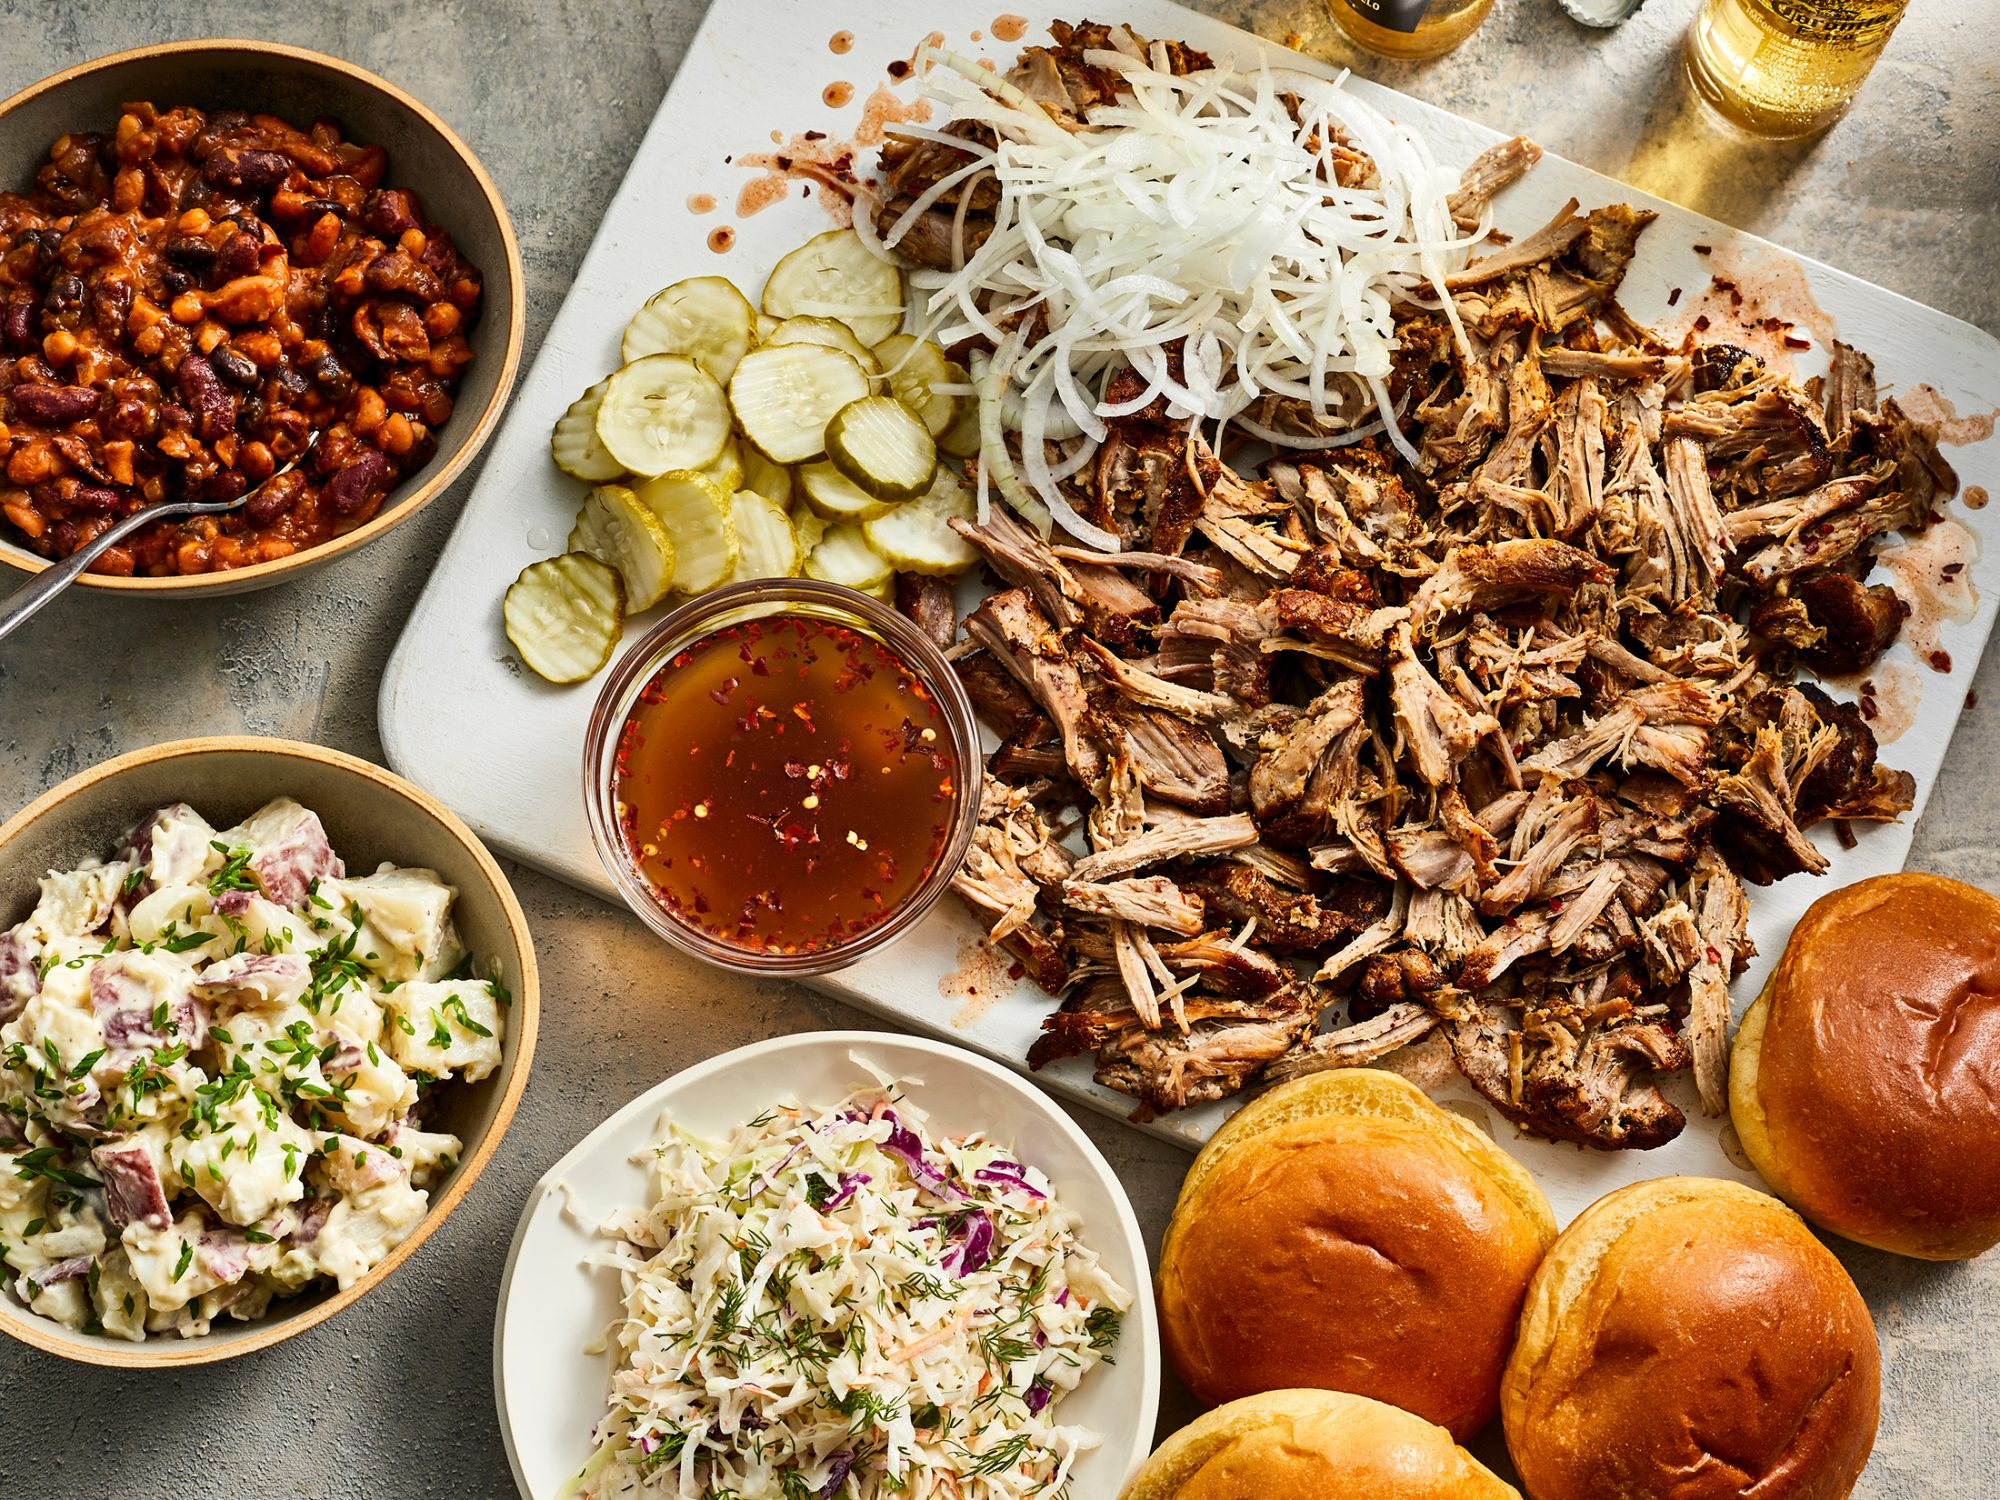 Make Instant Pot Carolina Barbecue and Avoid Your Oven At All Costs